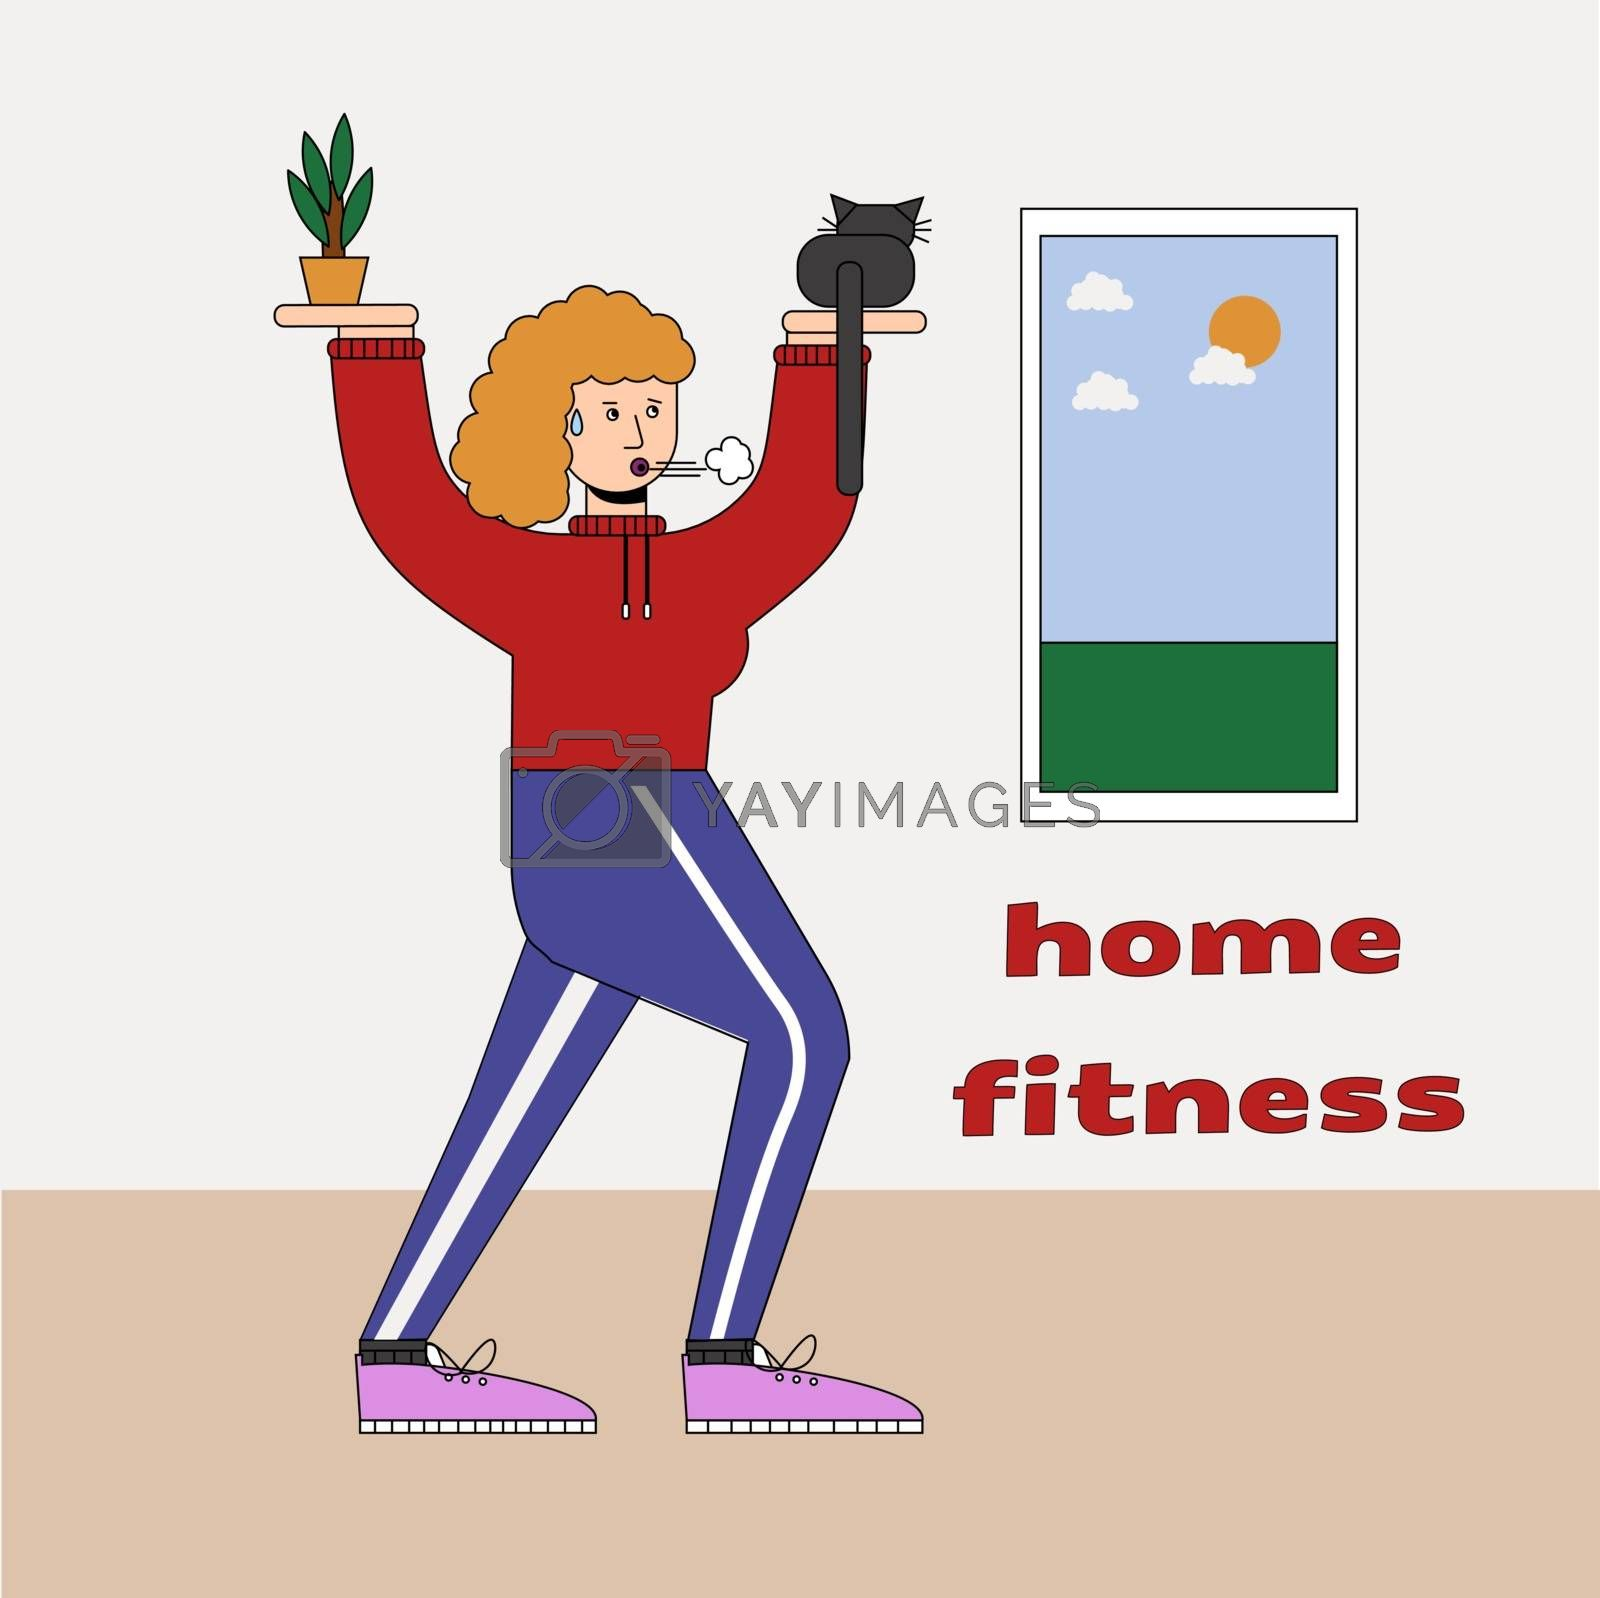 Woman with cats doing gymnastics at home, humorous fitness motivational cartoon, character doing exercises indoors. Cauchois sits on the palm instead of a kettlebell. by zaryov